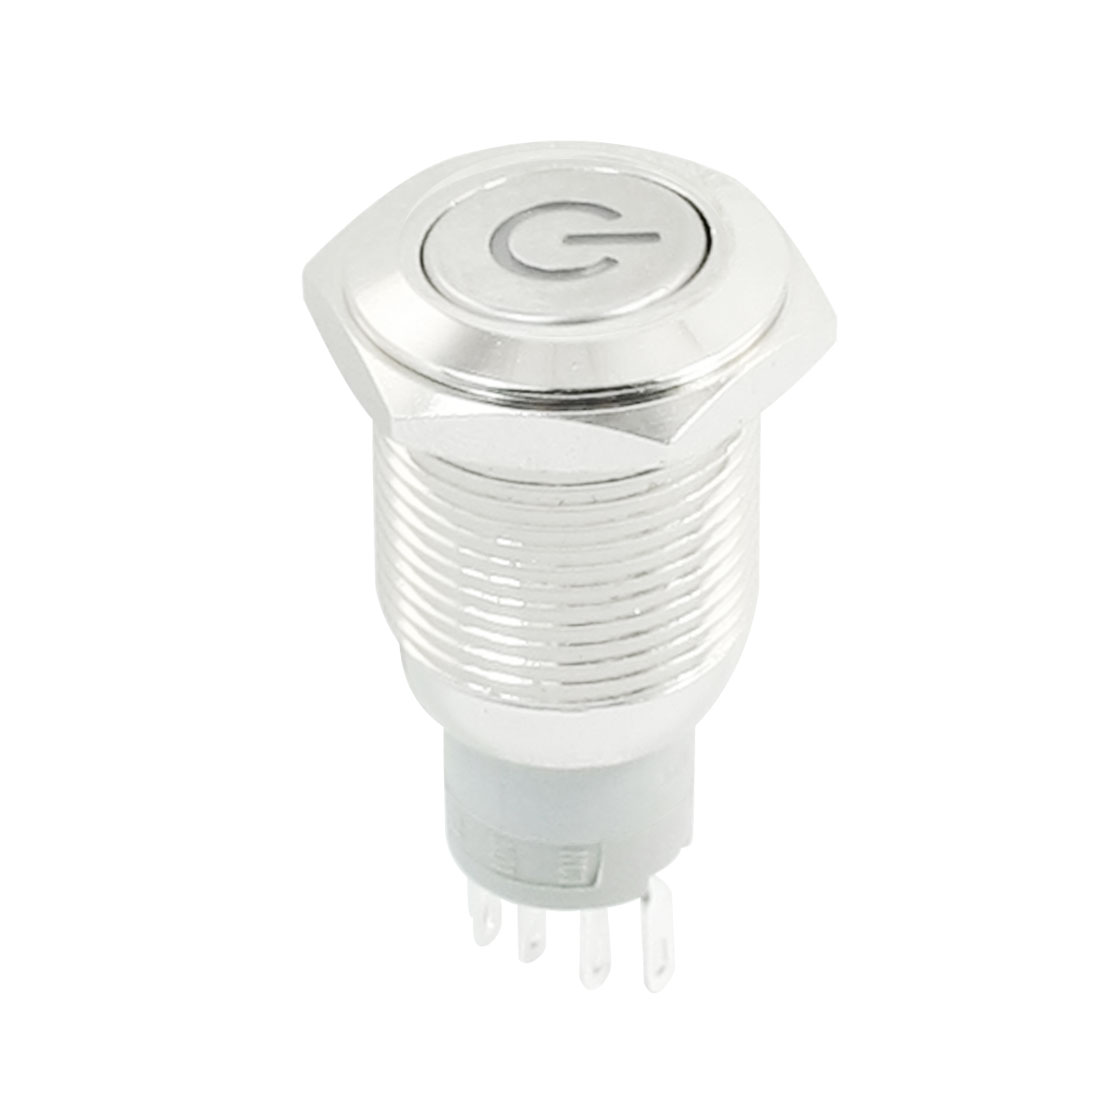 DC12V White Power Indicator LED Angel Eye SPDT 1NO 1NC 16mm Thread Latching Metal Push Button Switch